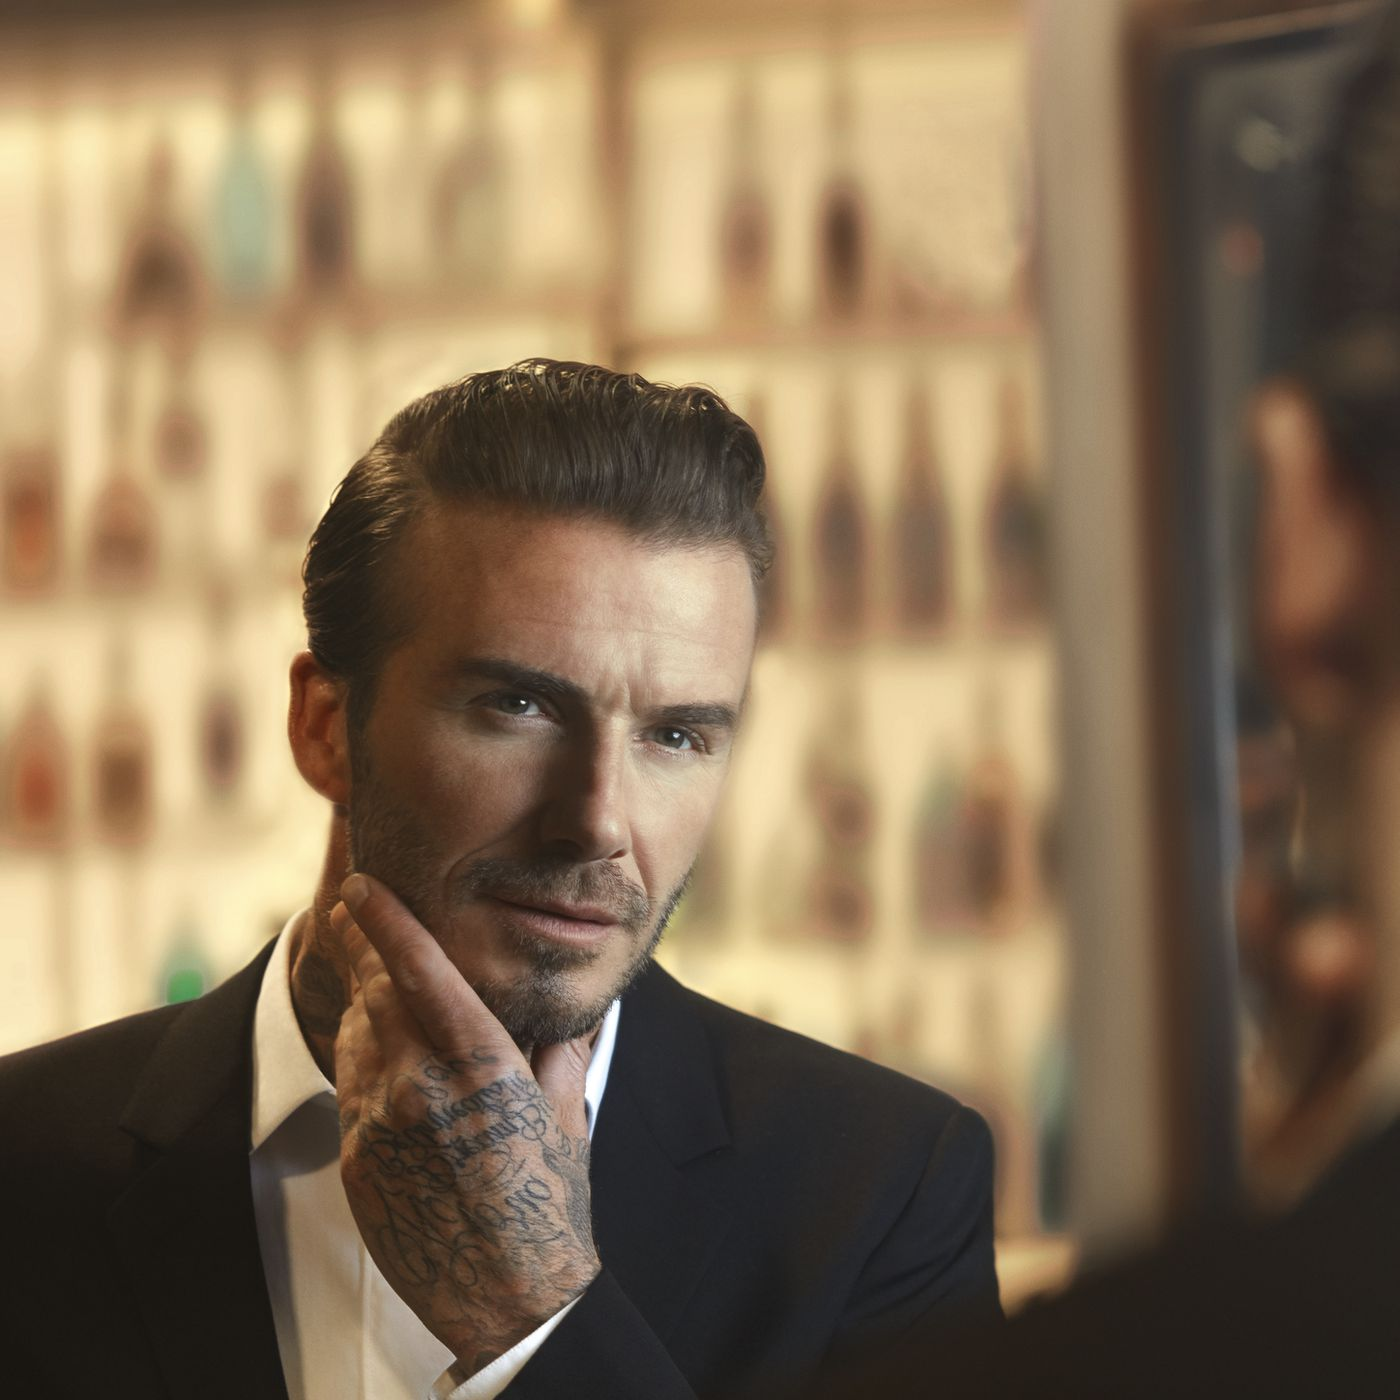 David Beckham Soccer Star Has Become A Fashion Icon Racked